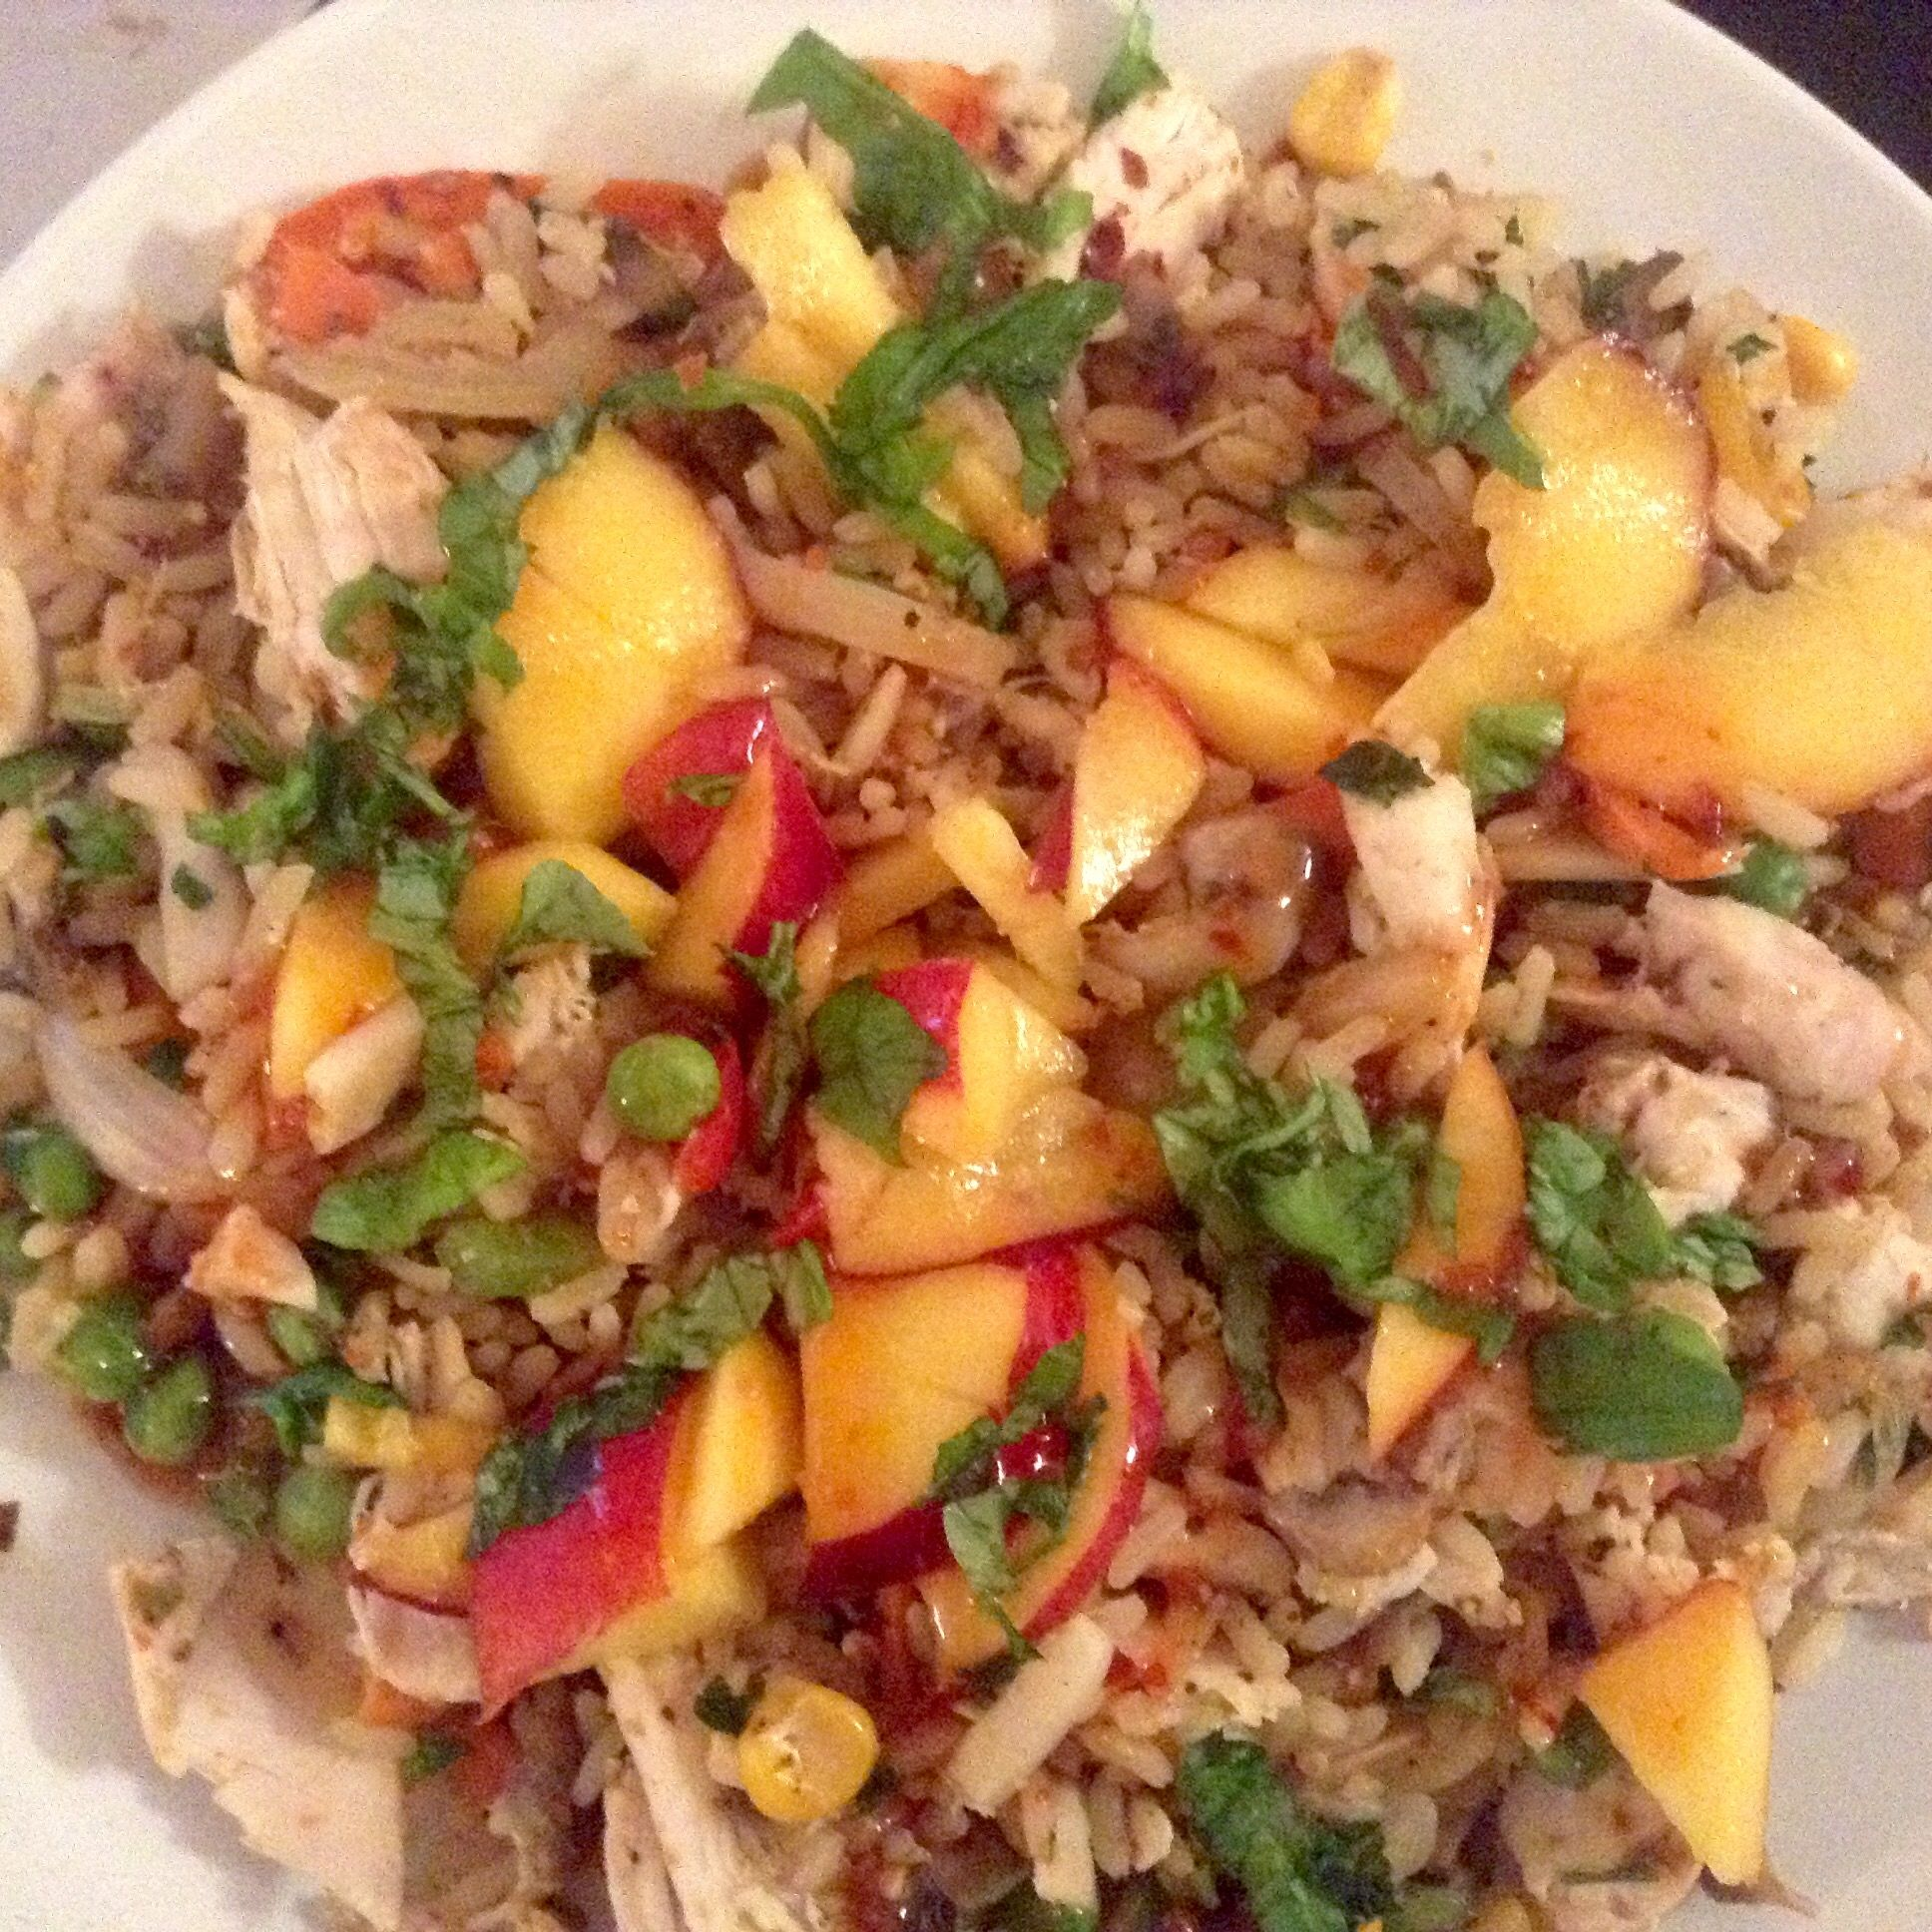 Spicy ricy chicken with nectarine